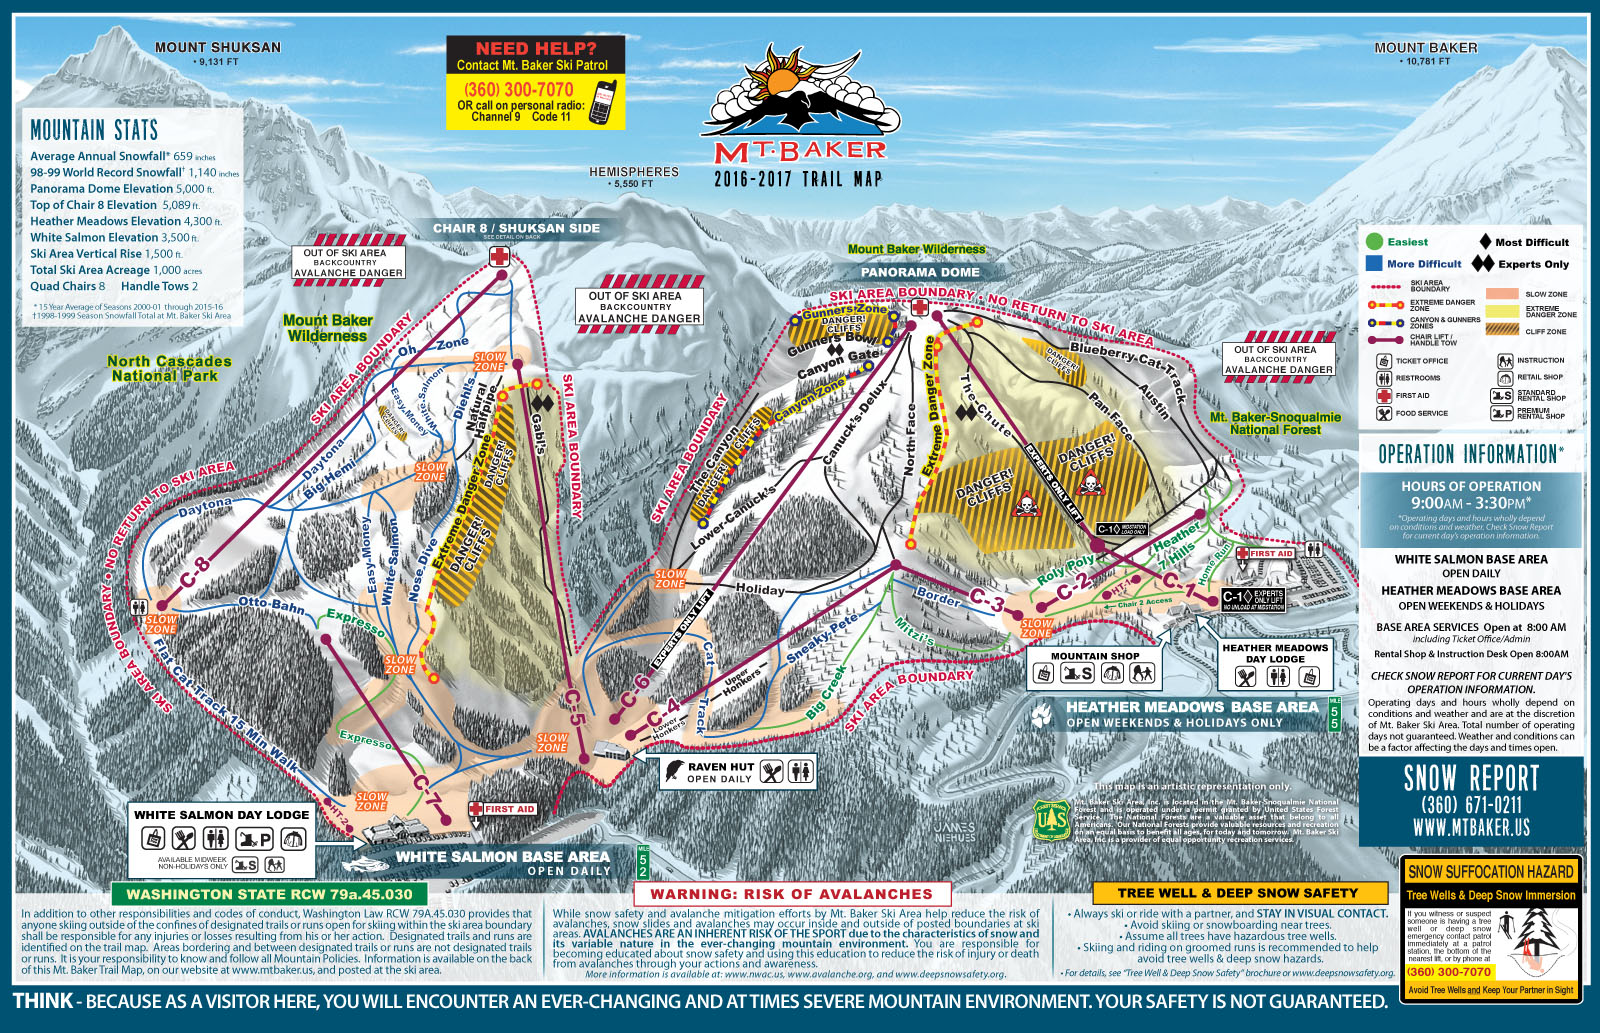 Mount Baker Ski Resort Guide, Location Map & Mount Baker ski ... on montana resort towns, mt. snow trail map, montana average temperatures by month, mt. rose ski area map, great divide ski map, montana ski areas, montana hotels map, montana ski towns, new york city tourist attractions map, mt. baldy ski trail map, montana whitefish mountain resort, tremblant canada map, red lodge ski resort map, mt spokane ski map, montana road conditions map webcams, red lodge trail map, resorts in montana map, montana snotel data, montana scenic drives map, montana hiking map,